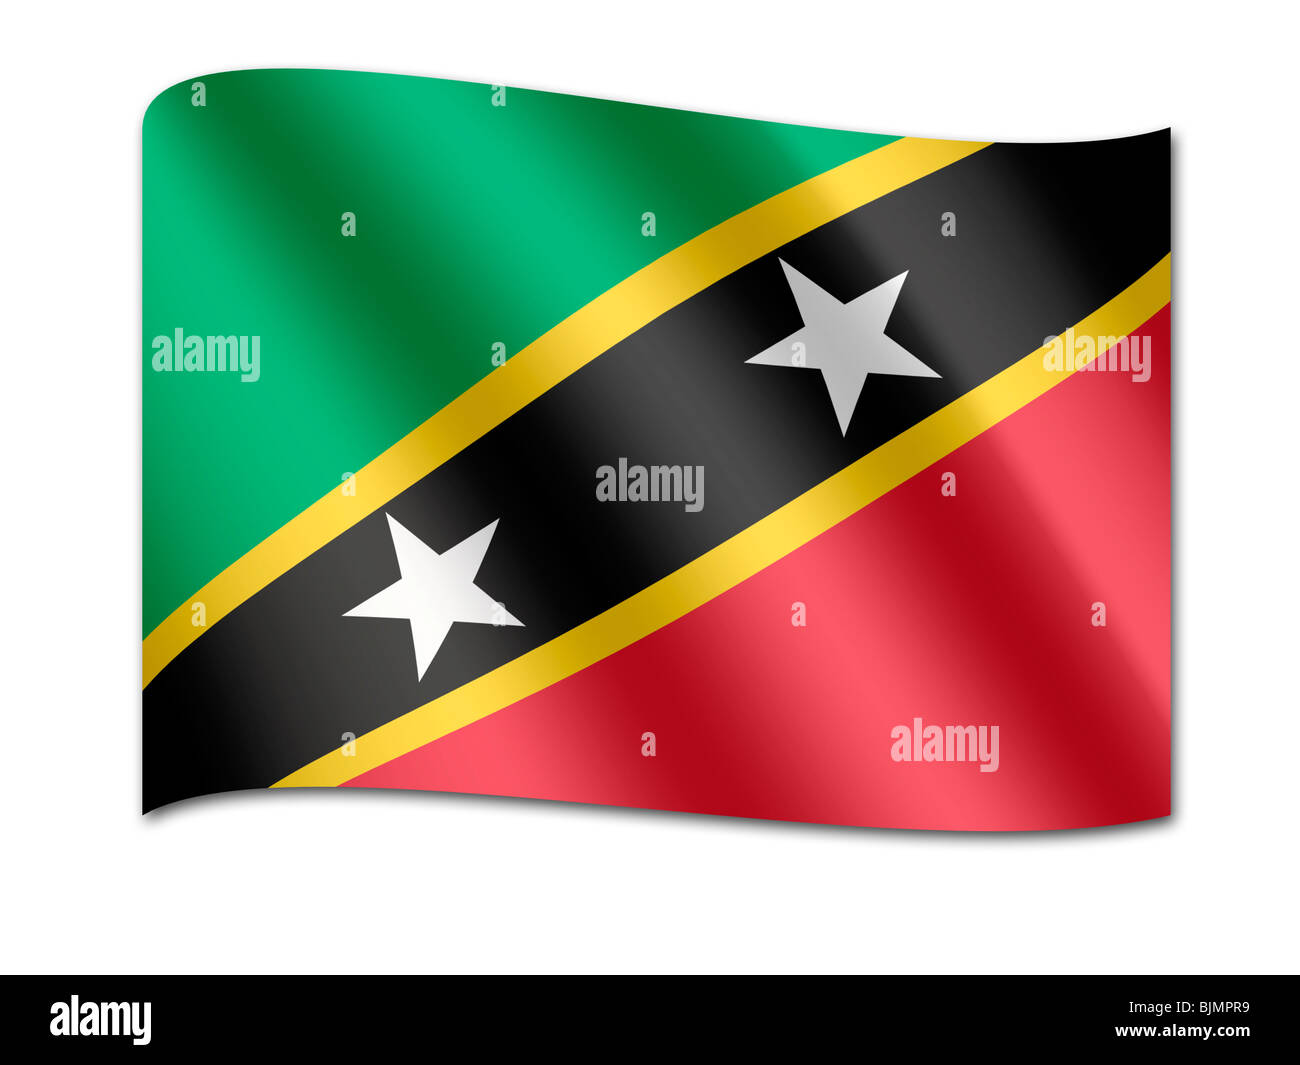 Flag of St. Kitts und Nevis - Stock Image